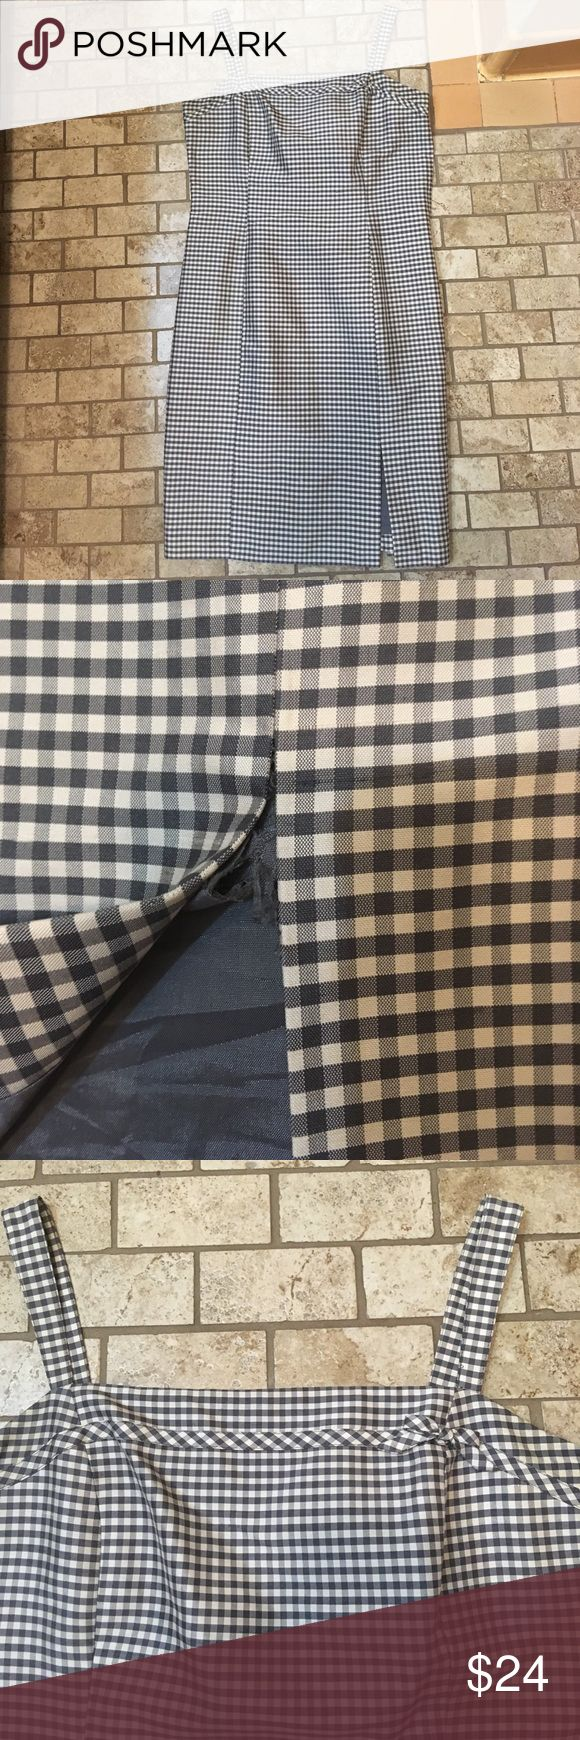 Anne Taylor loft size 2 dress silk lining picnic Anne Taylor loft size 2 dress silk lining picnic. Dress has a small slit that has but ripped a little. Fits true to size size 2. Ann Taylor Dresses Mini